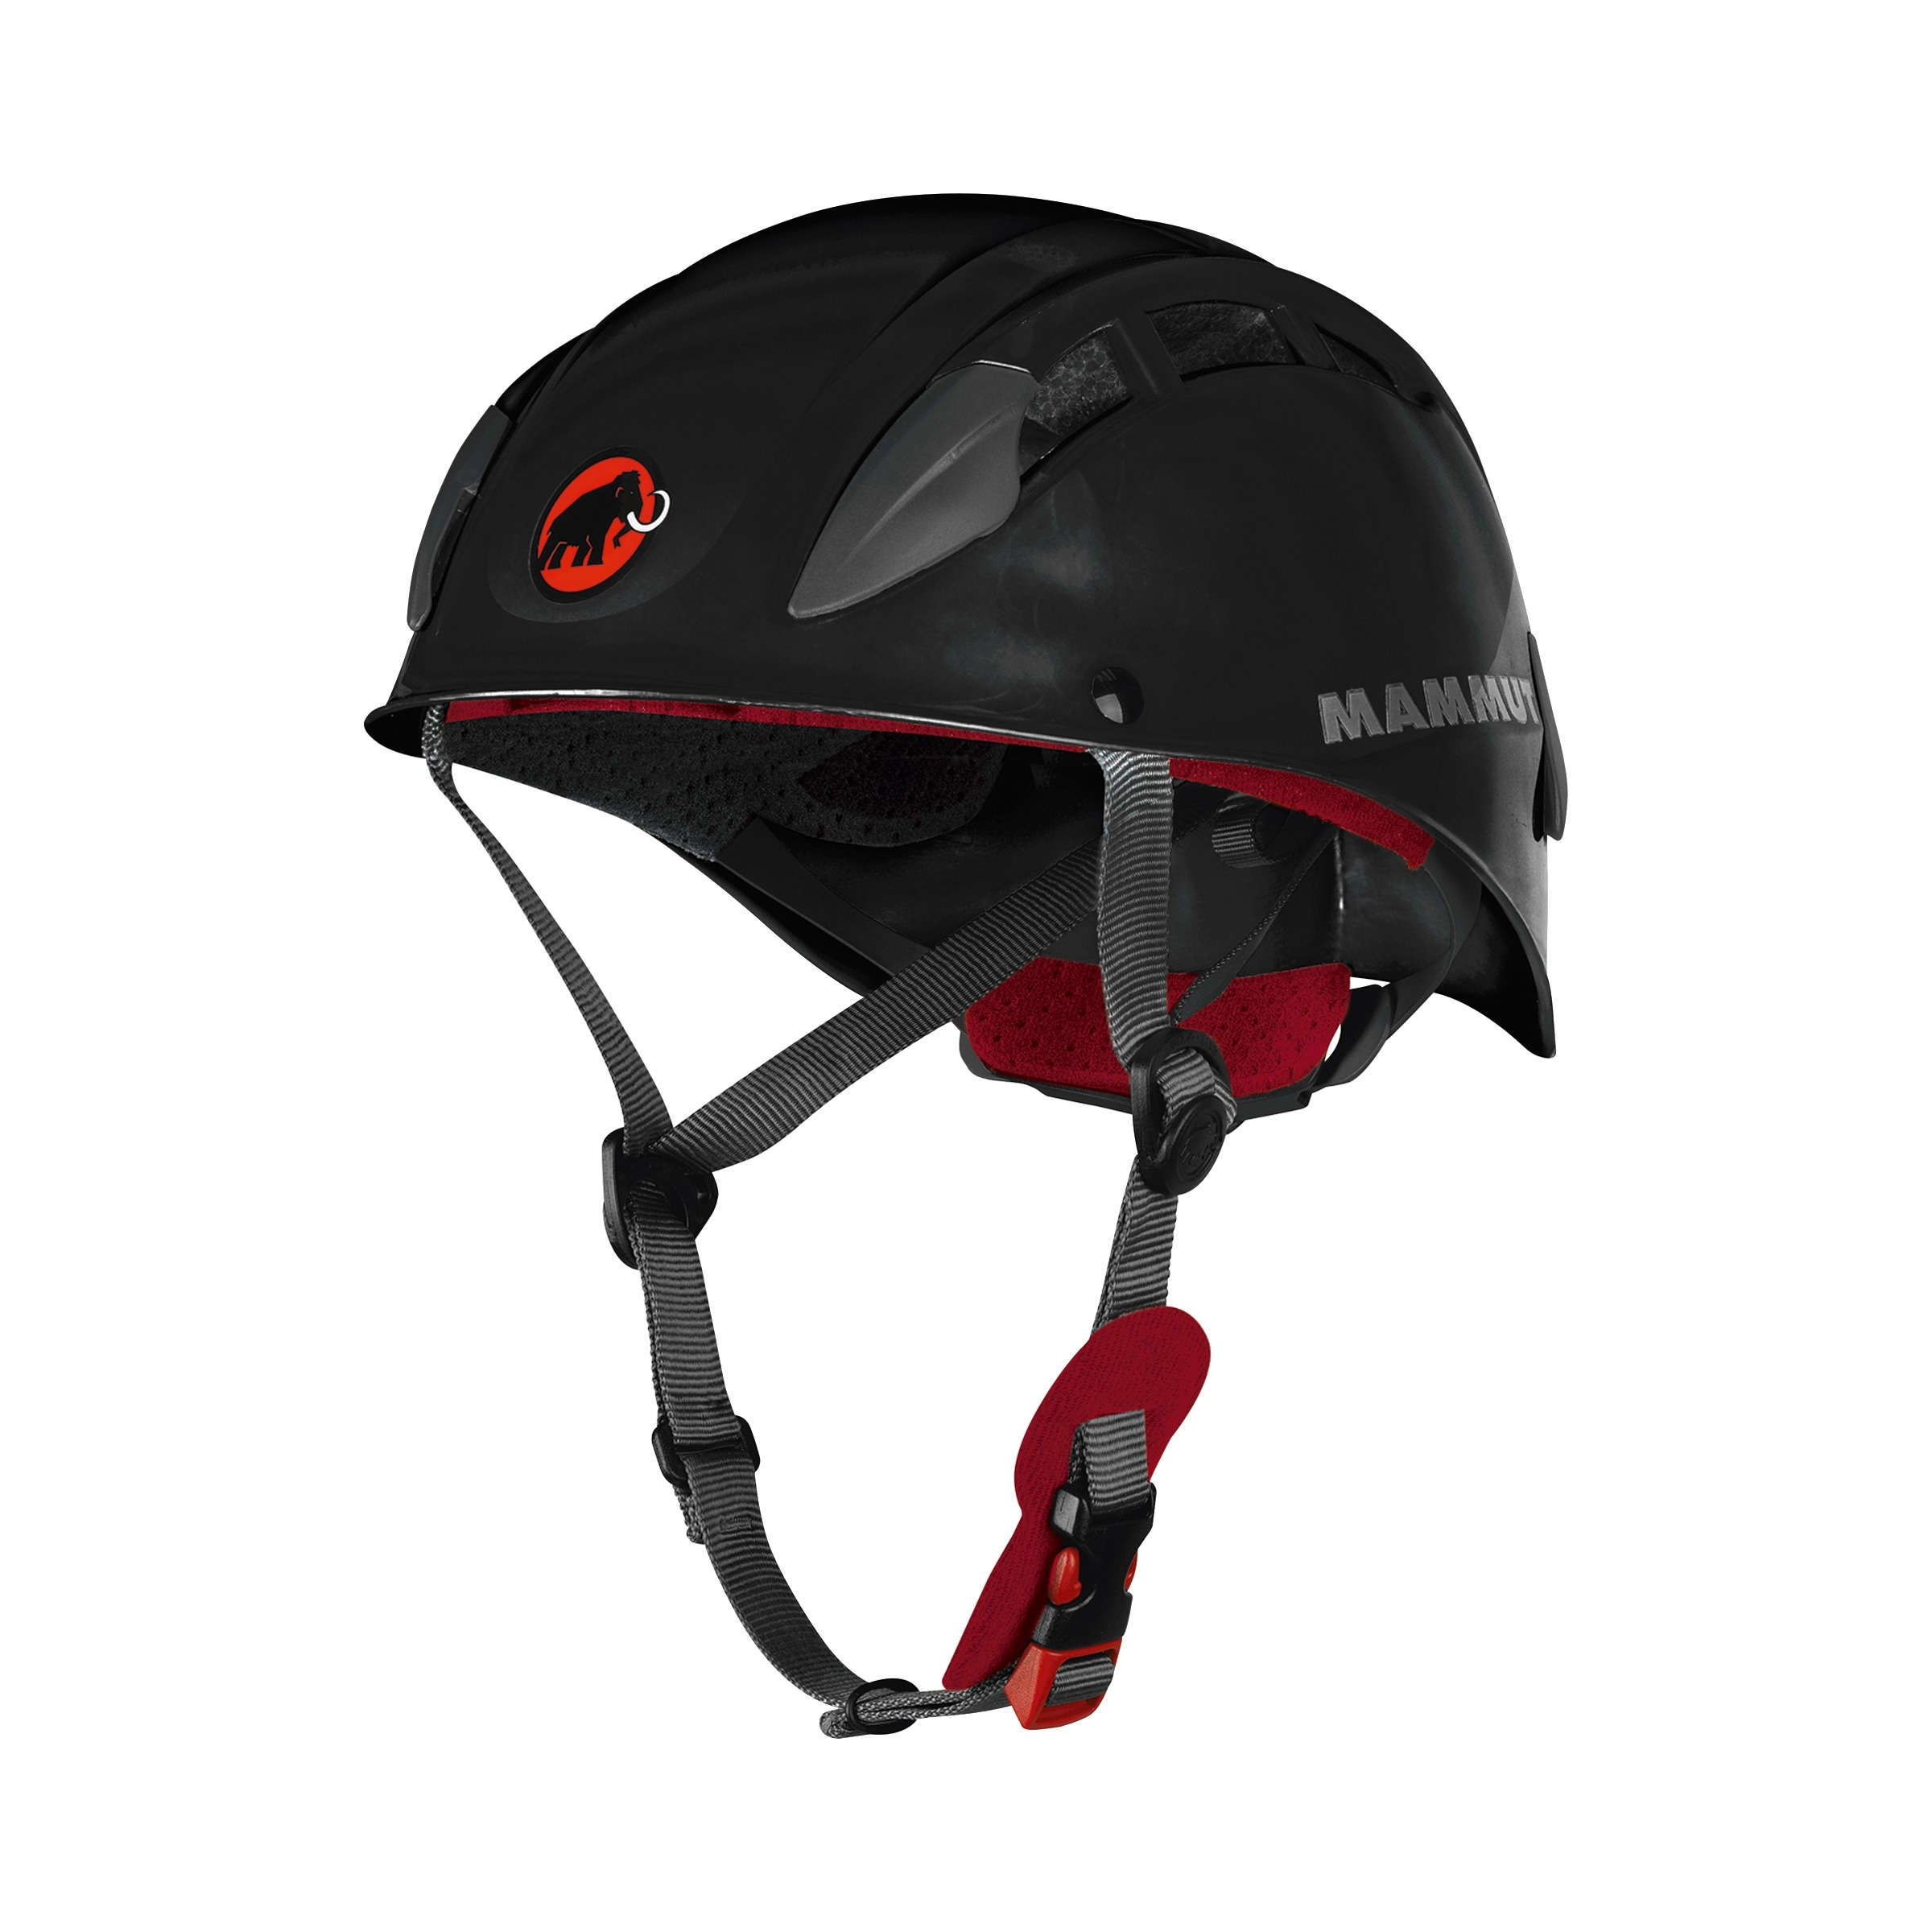 Casco da arrampicata MAMMUT SKYWALKER 2